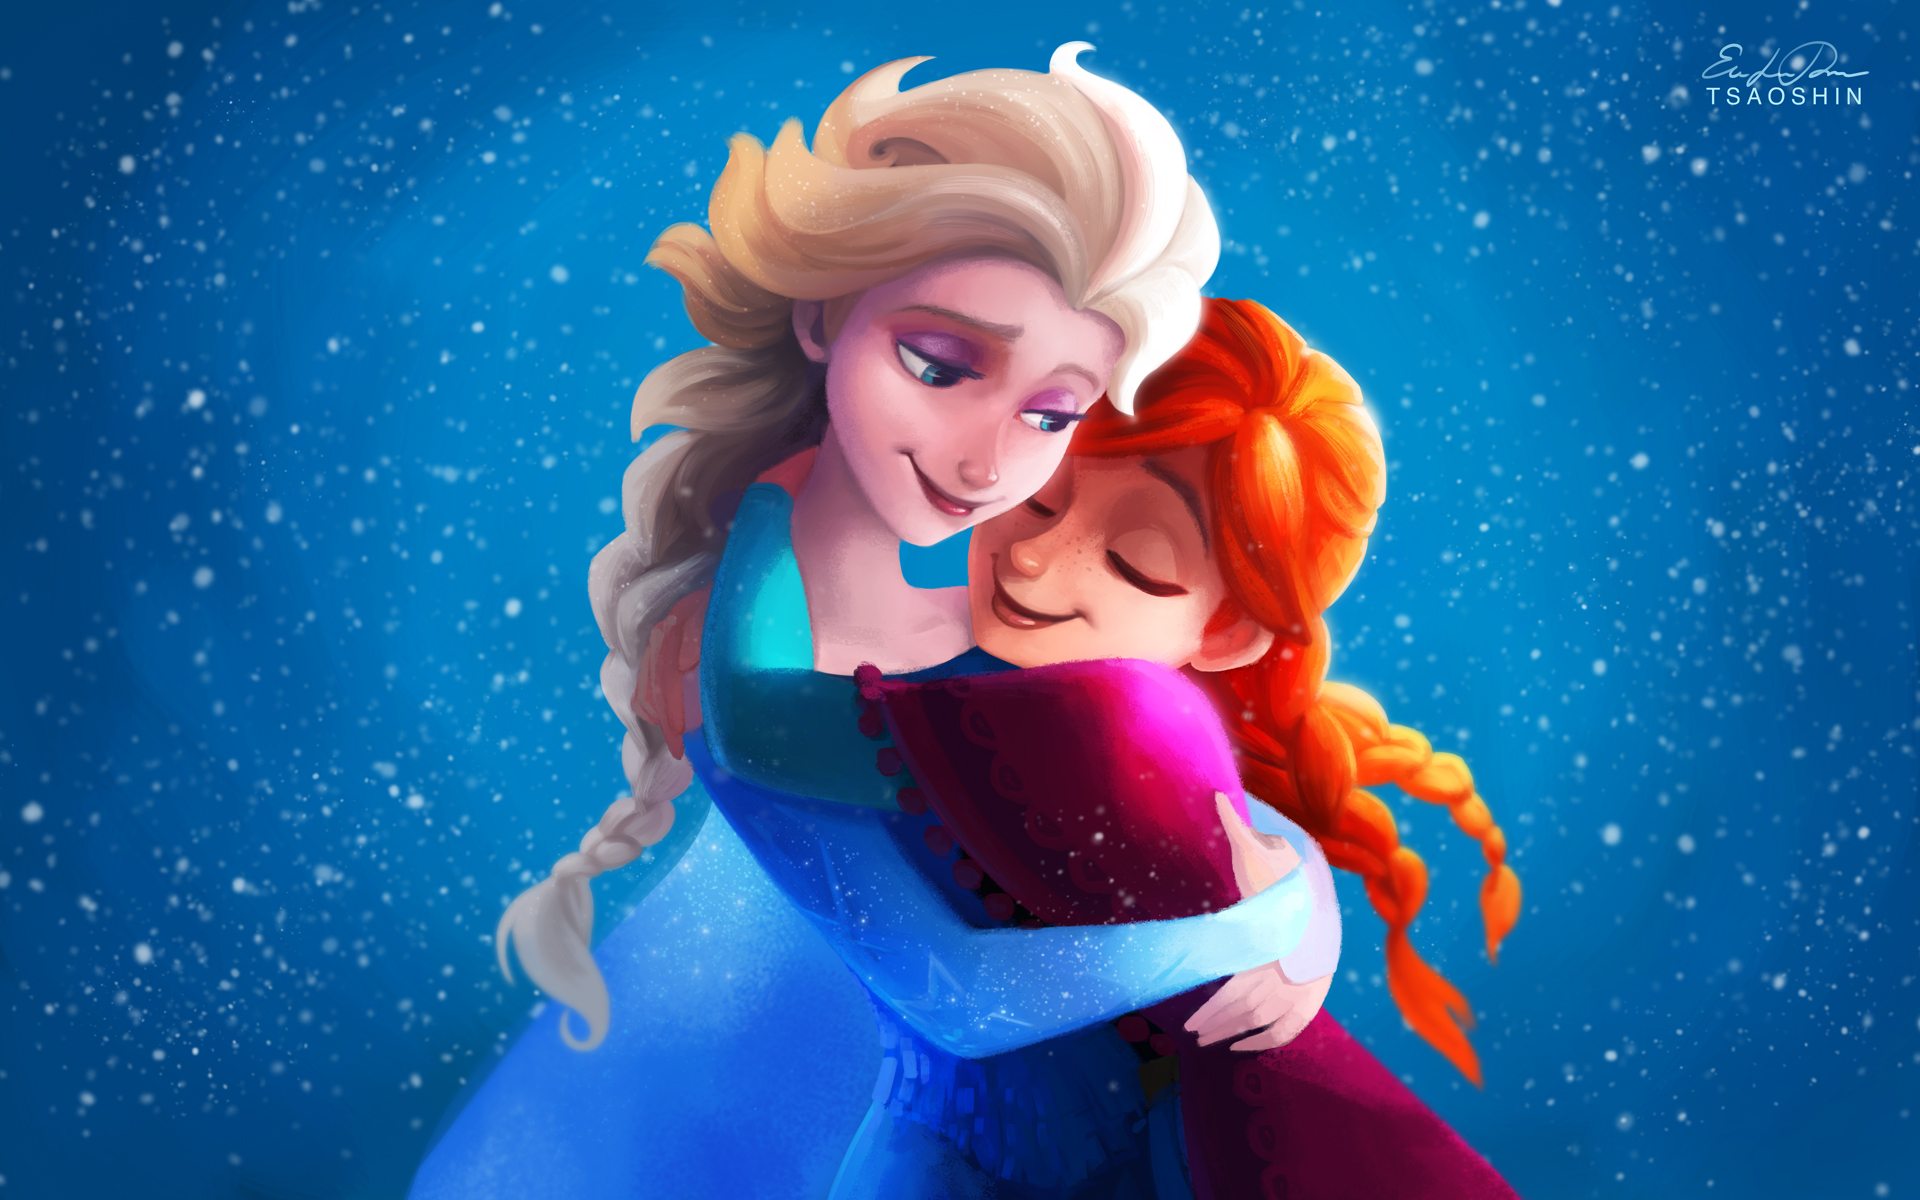 Movie - Frozen Anna (Frozen) Elsa (Frozen) Frozen (Movie) Wallpaper Frozen Wallpaper Hd Anna